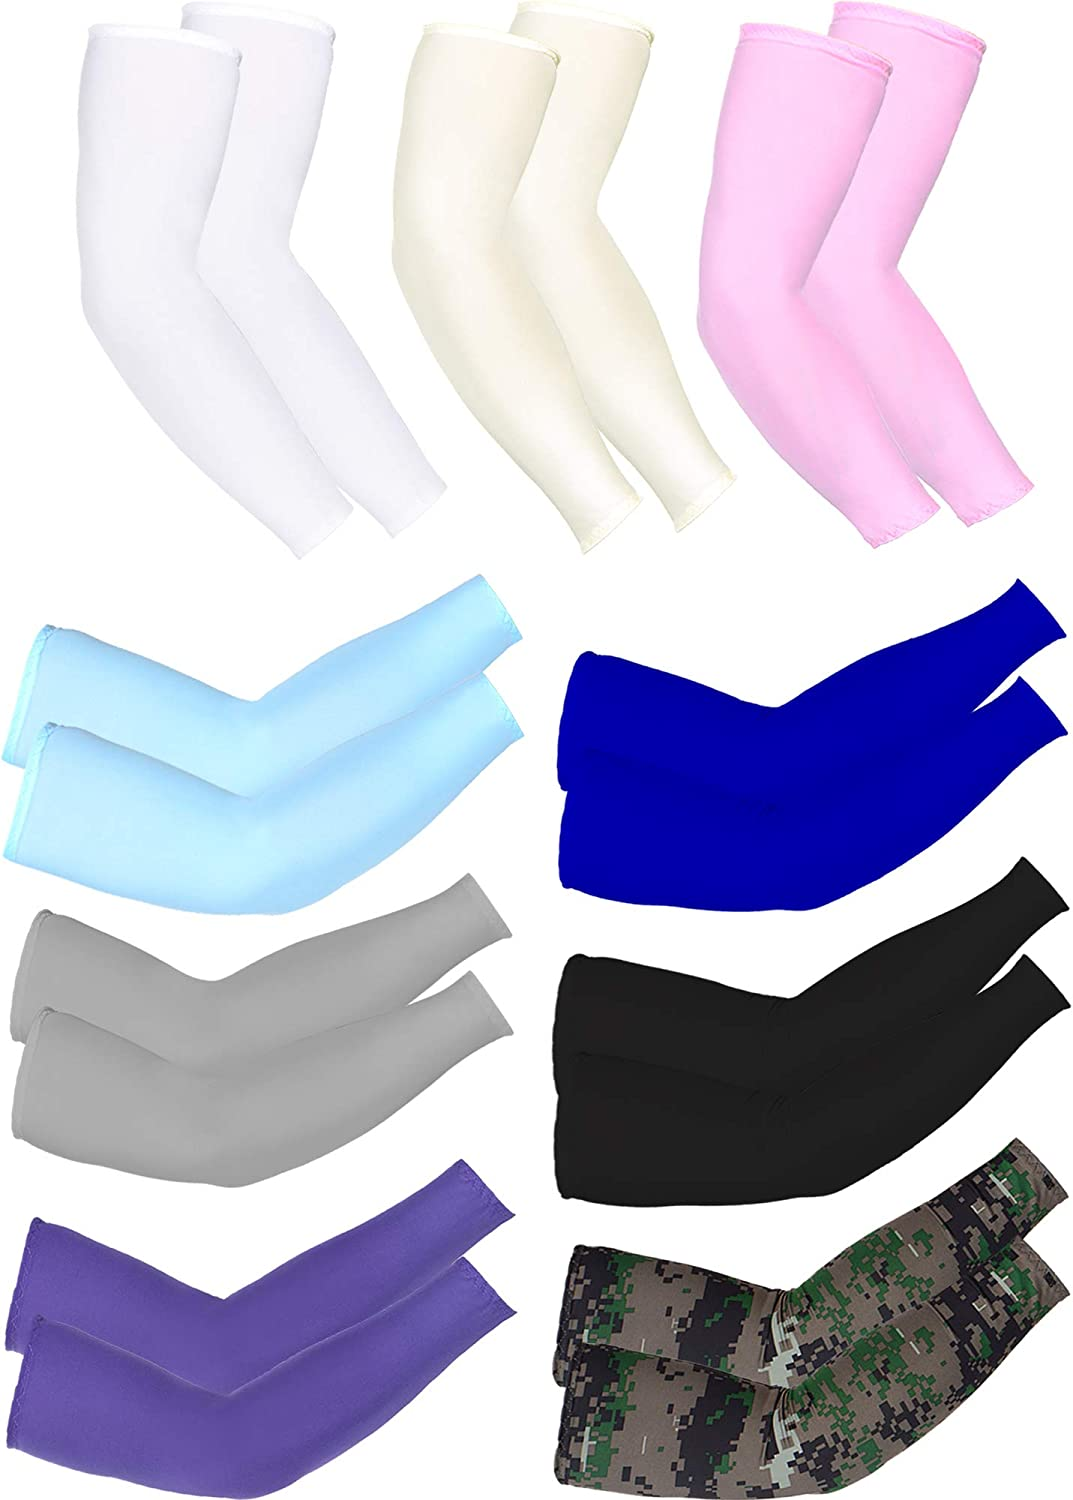 Mudder 9 Pairs Unisex UV Protection Sleeves Arm Cooling Sleeves Ice Silk Arm Sleeves Arm Cover Sleeves